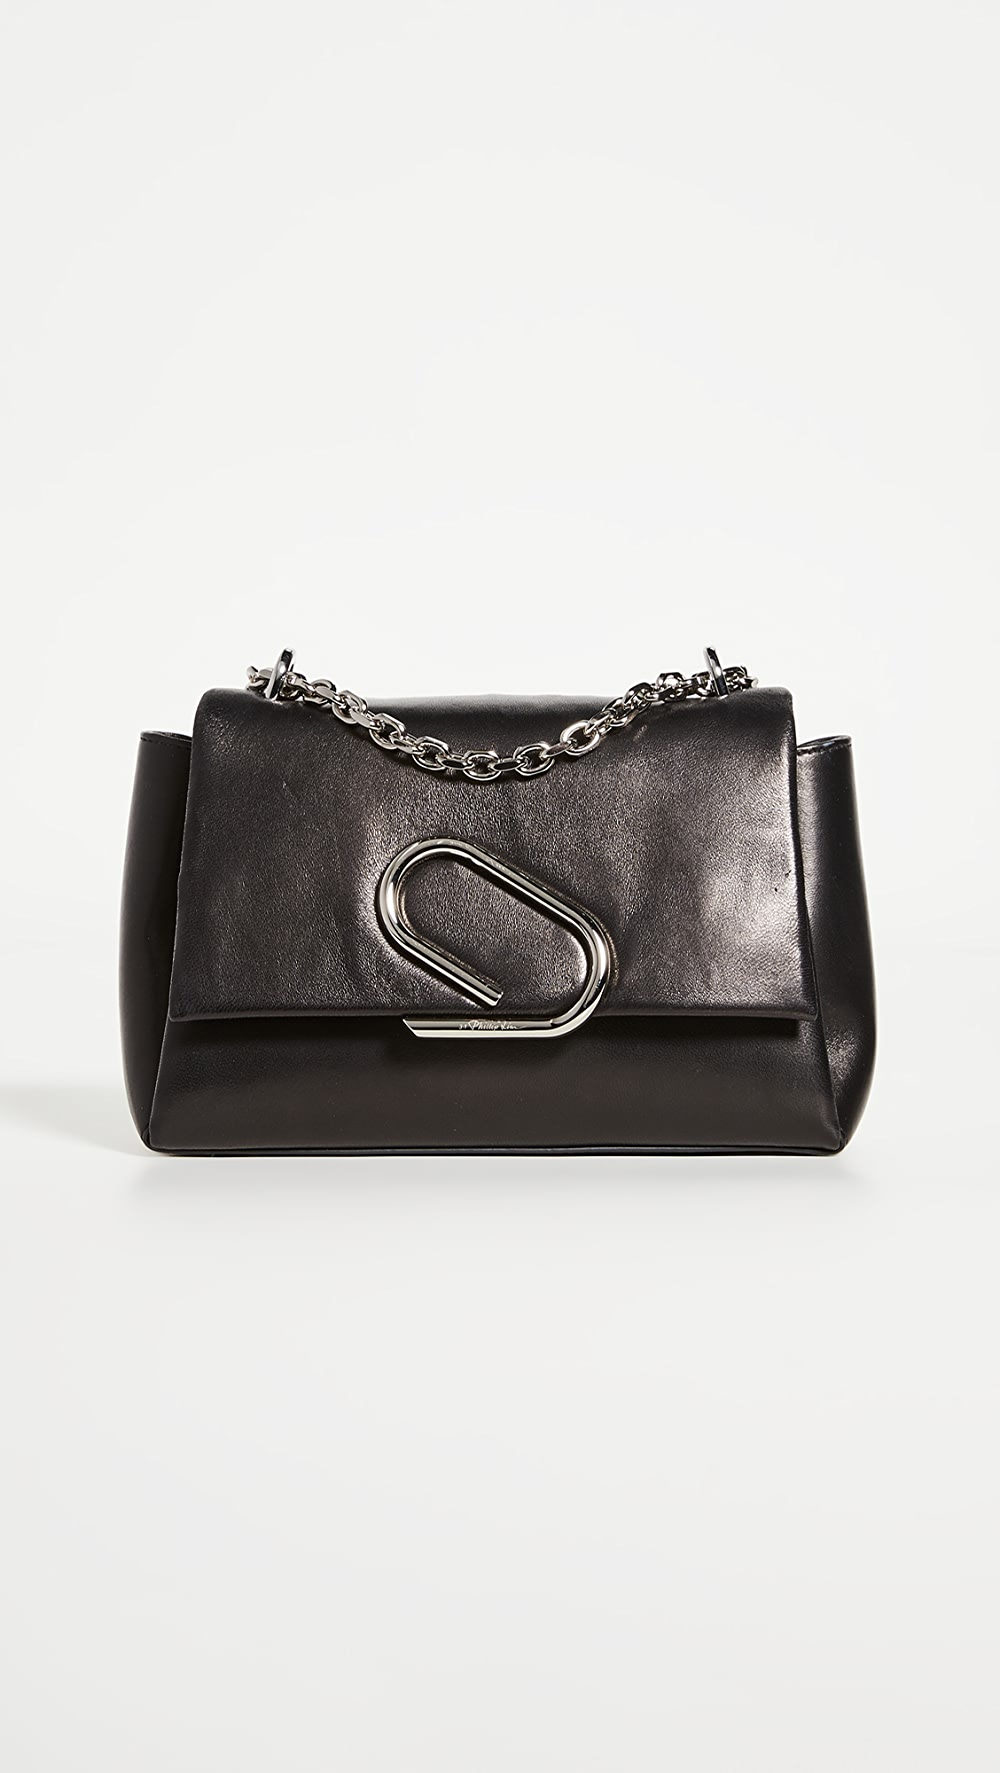 Well-Educated 3.1 Phillip Lim - Alix Soft Chain Cheapest Price From Our Site